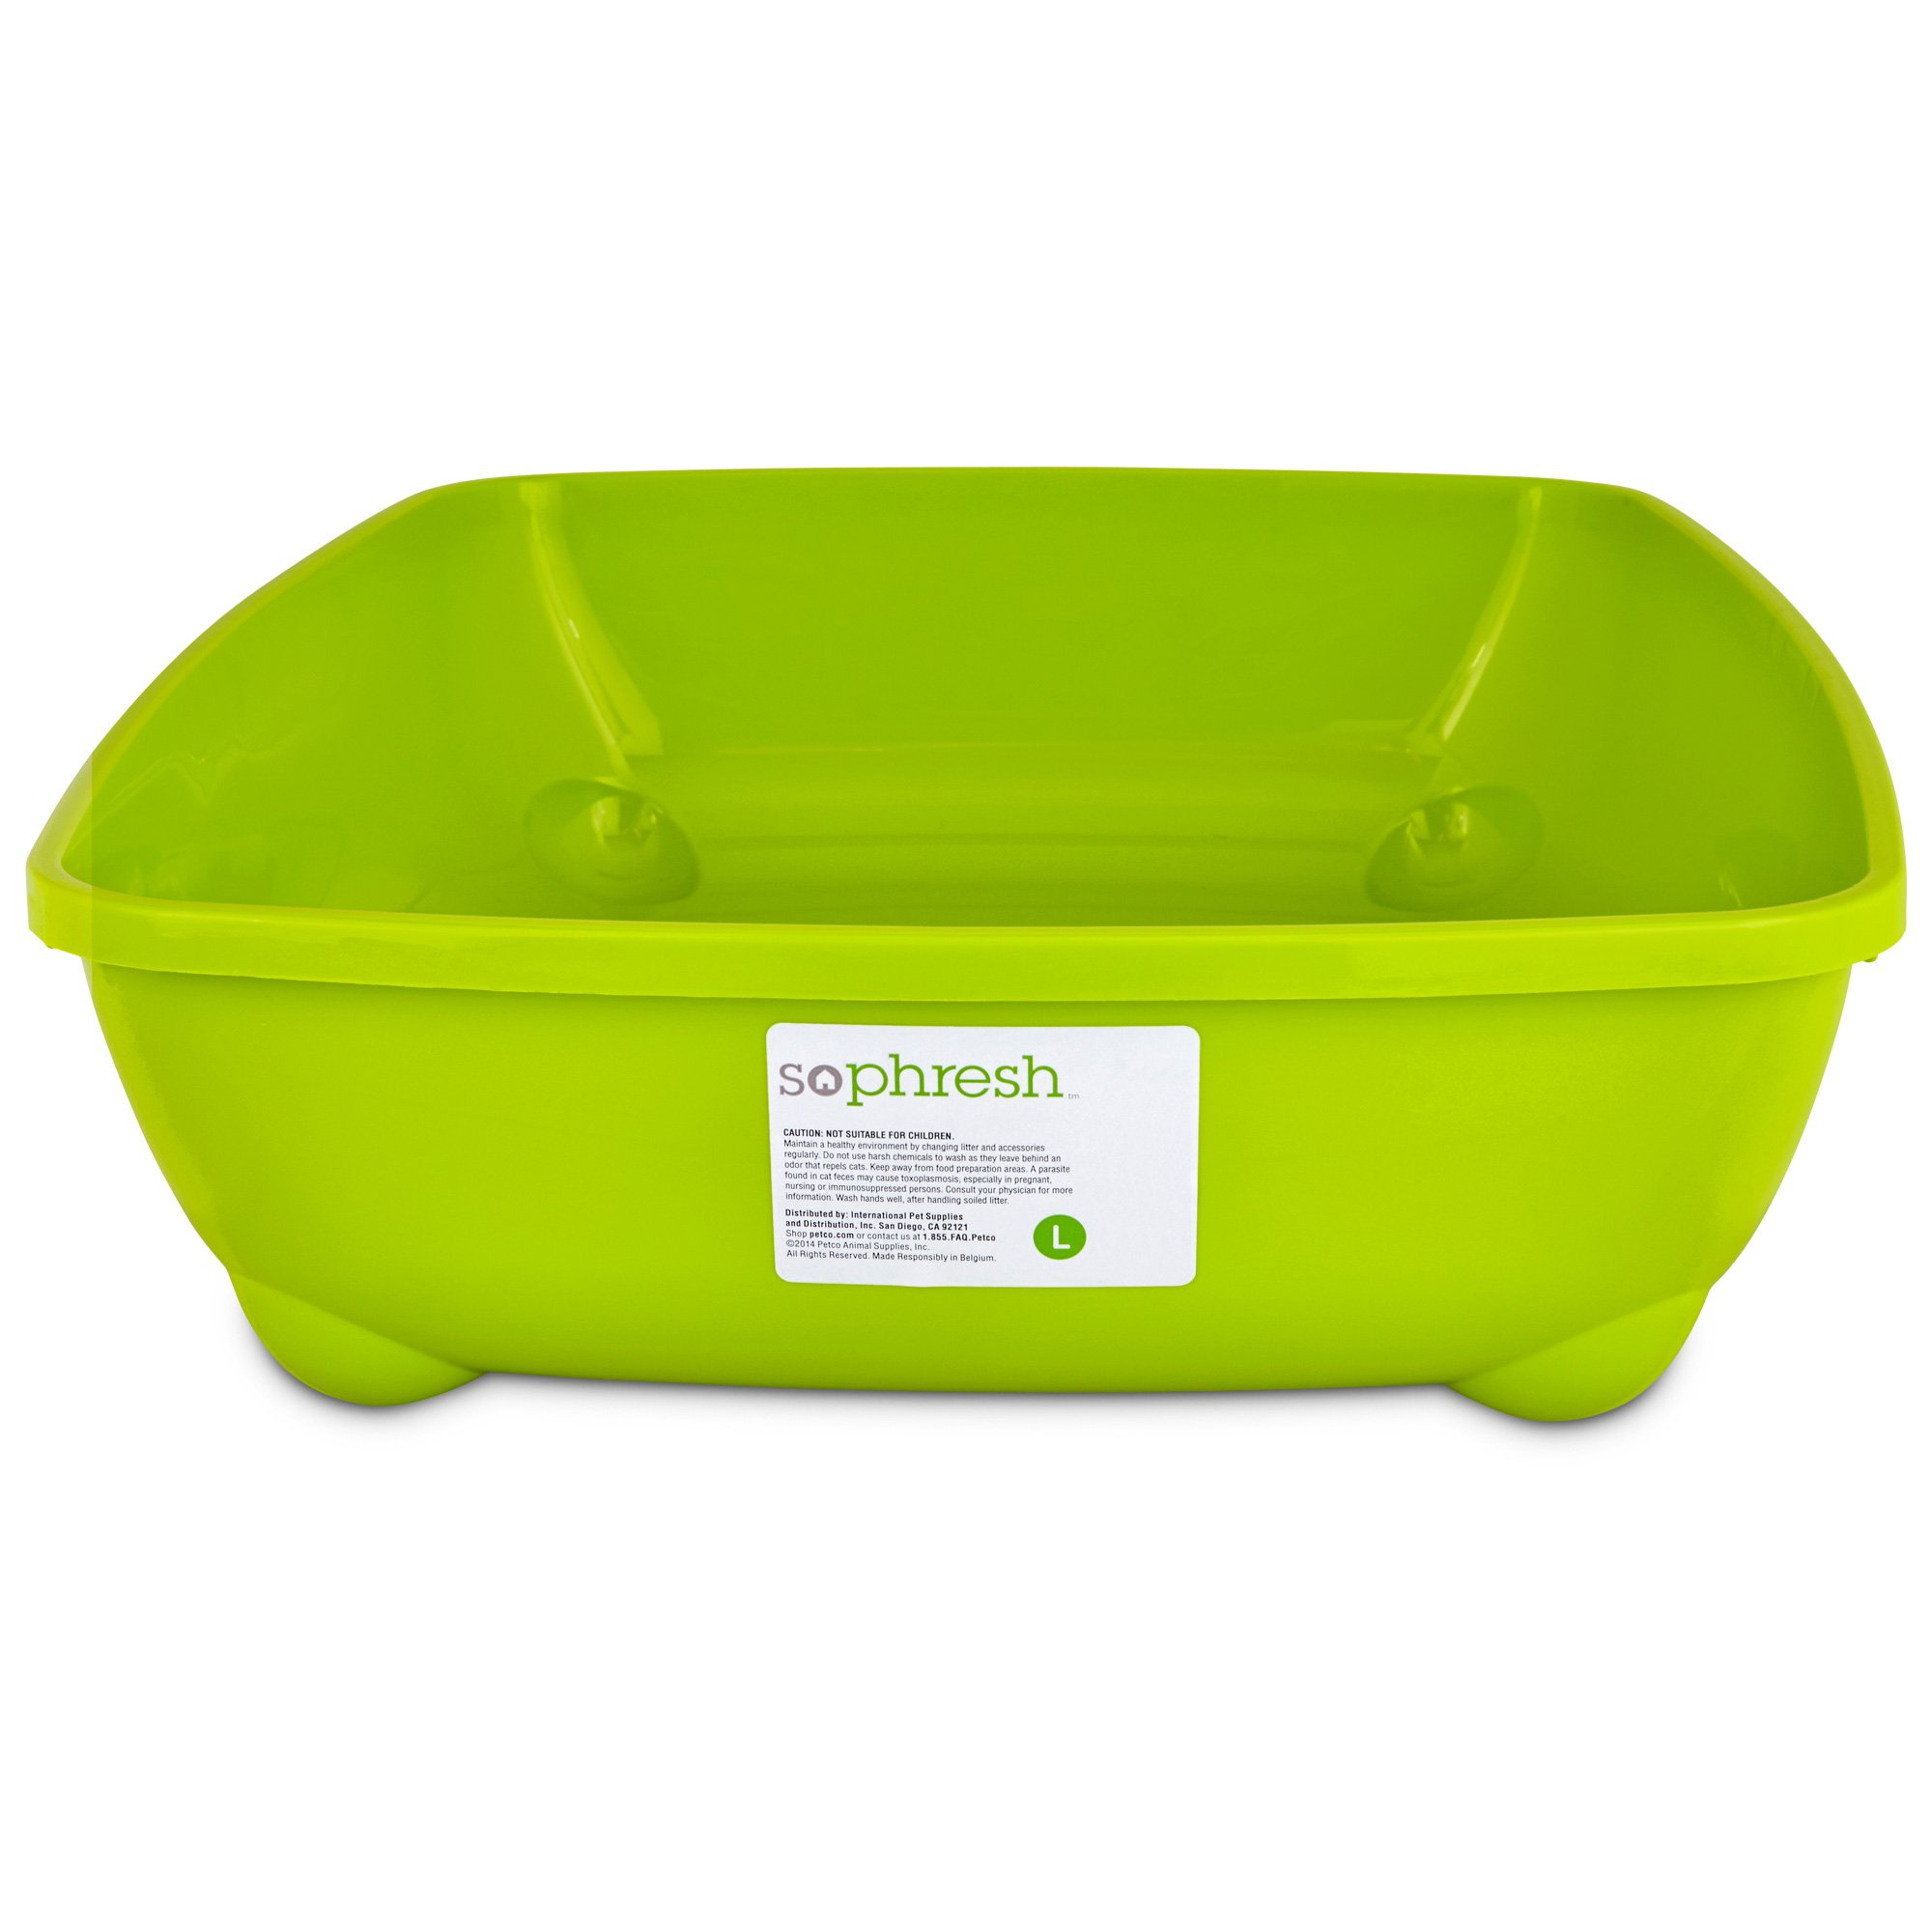 So Phresh Lime Green Large Open Litter Box